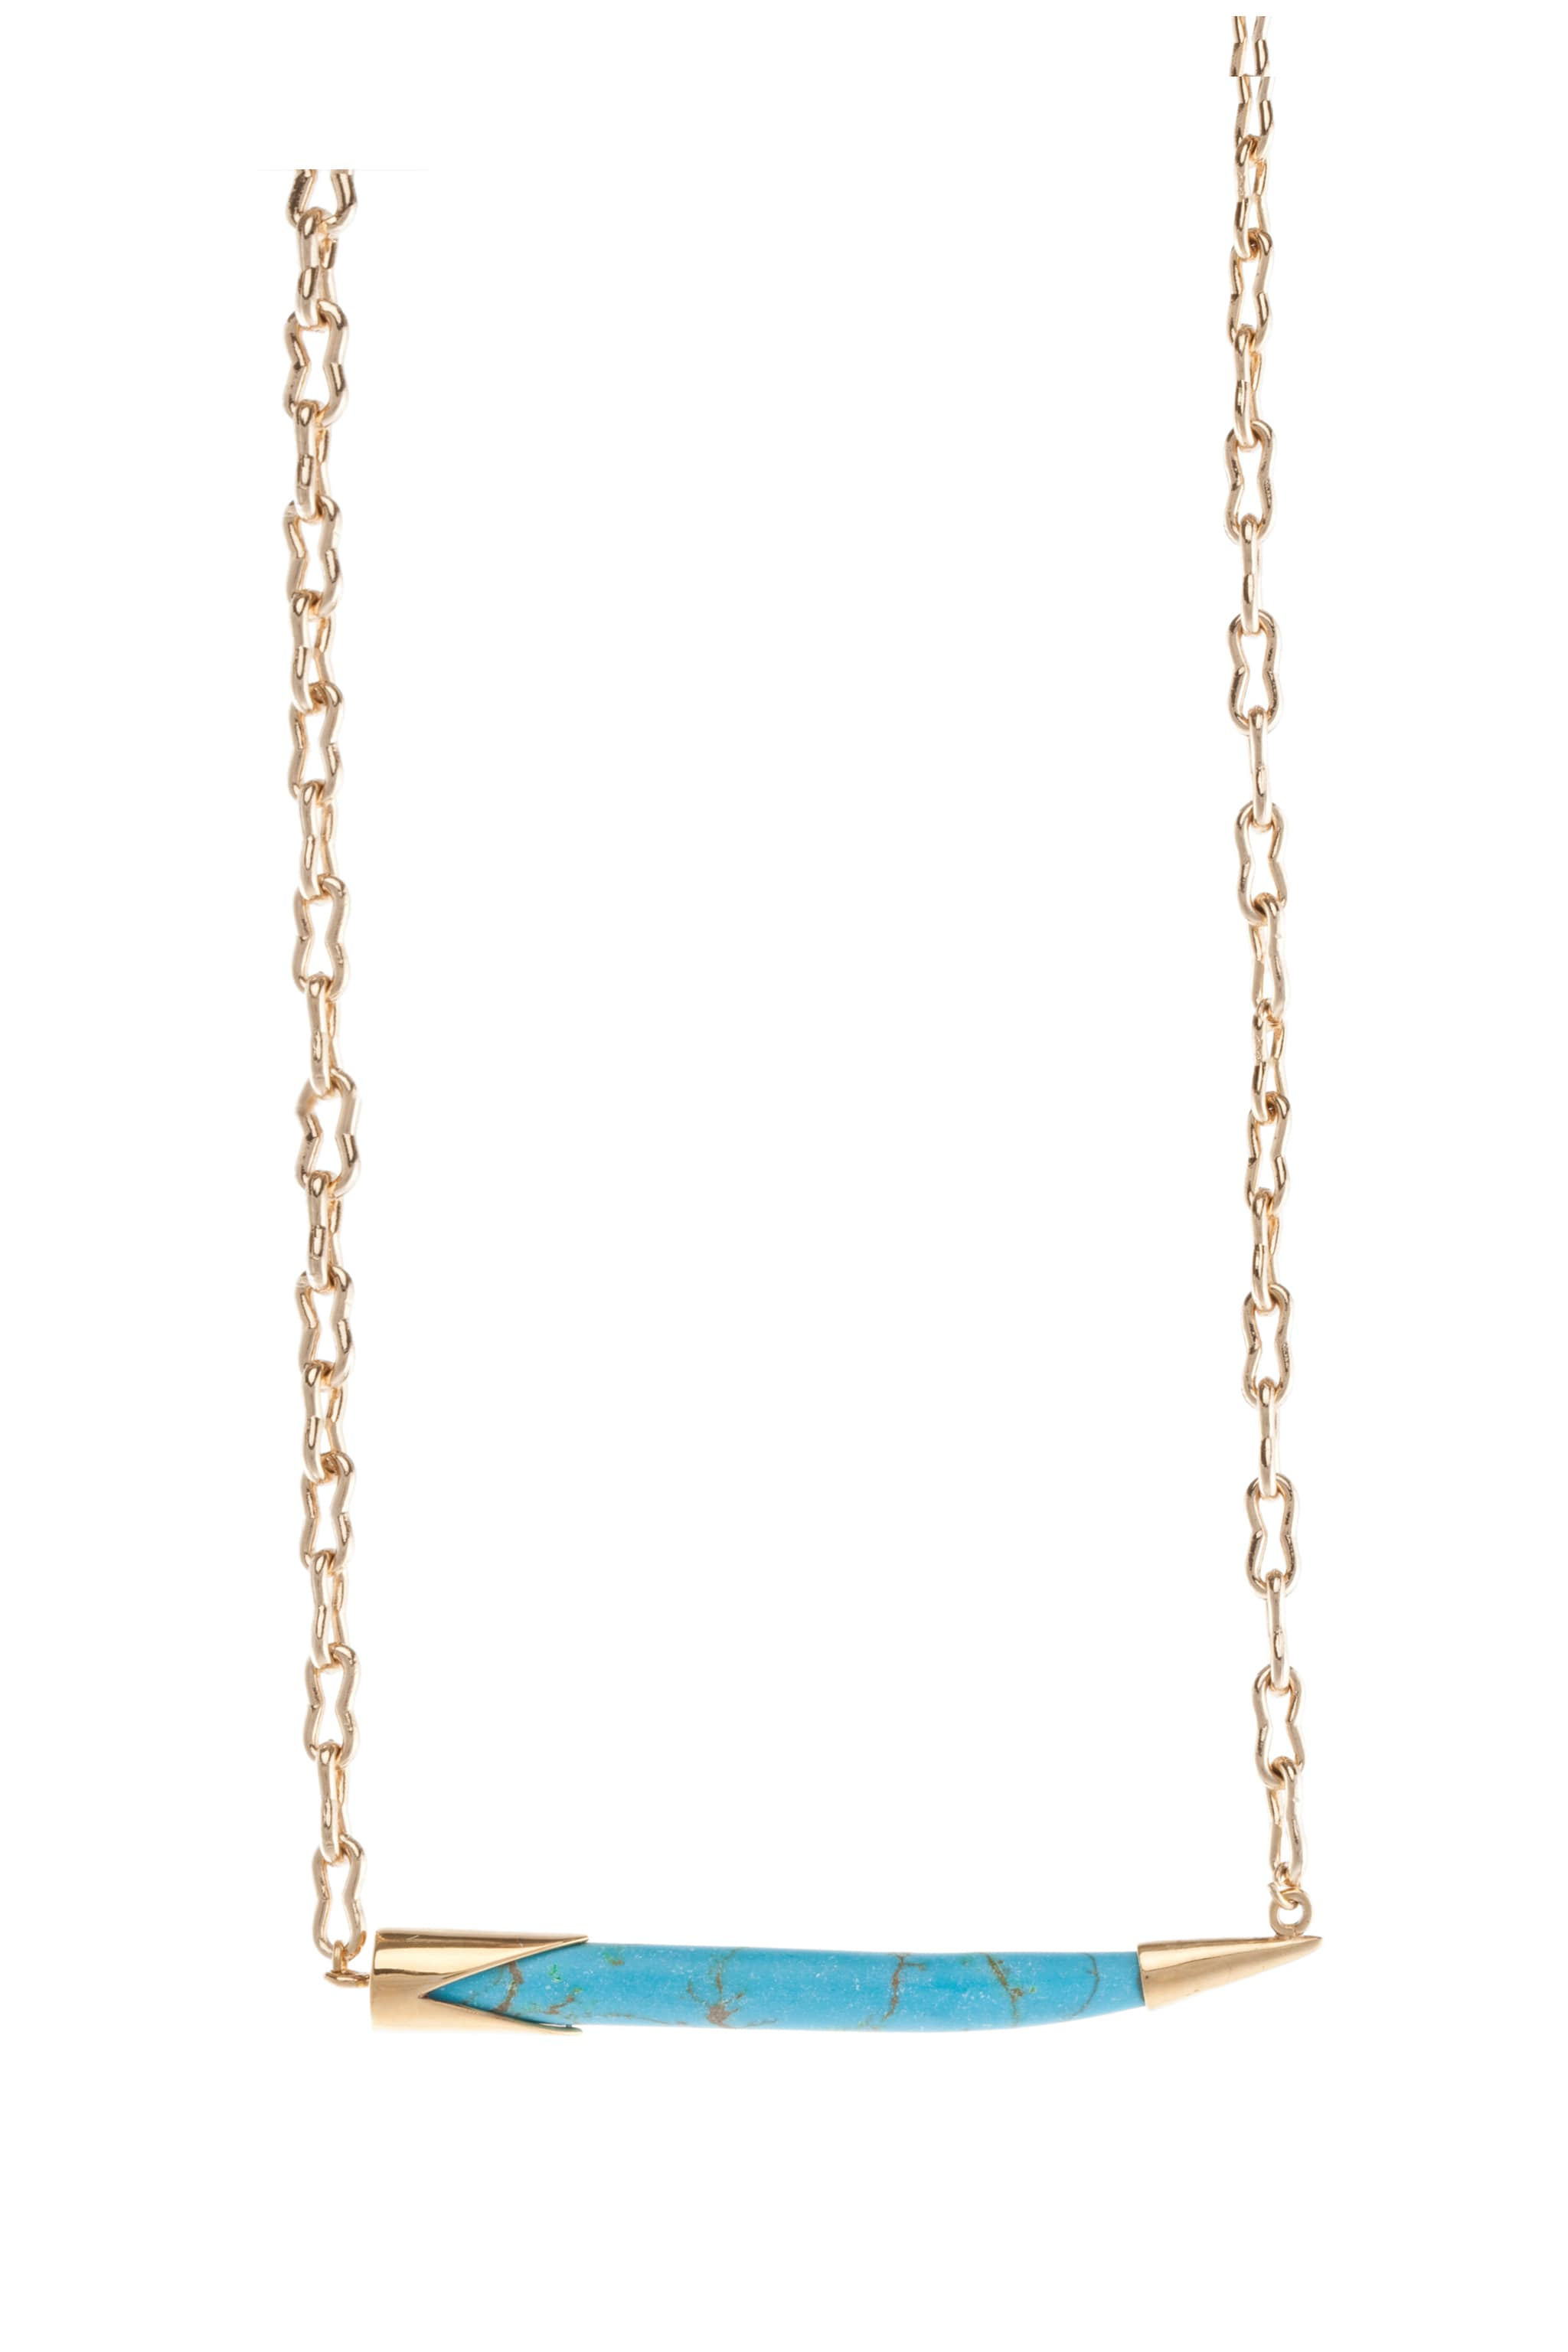 Image 2 of Kelly Wearstler Sideways Horn Necklace in Turquoise